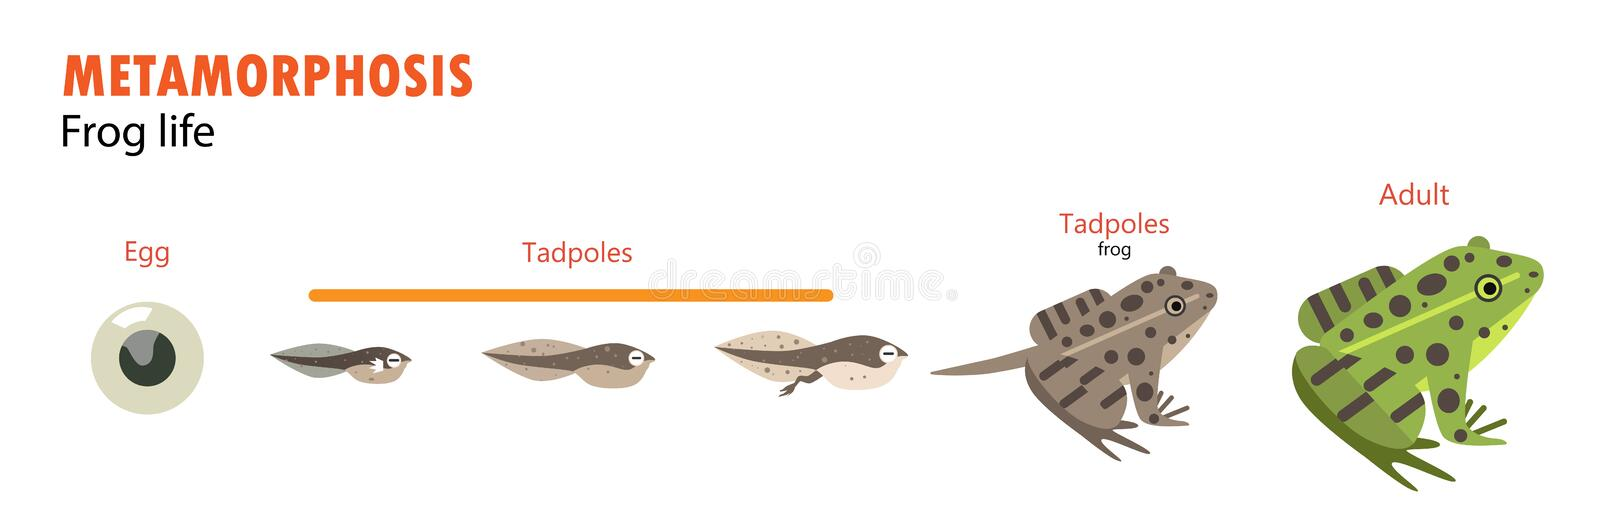 Frog life cycle metamorphosis. Illustration vector reptiles amphibians royalty free illustration